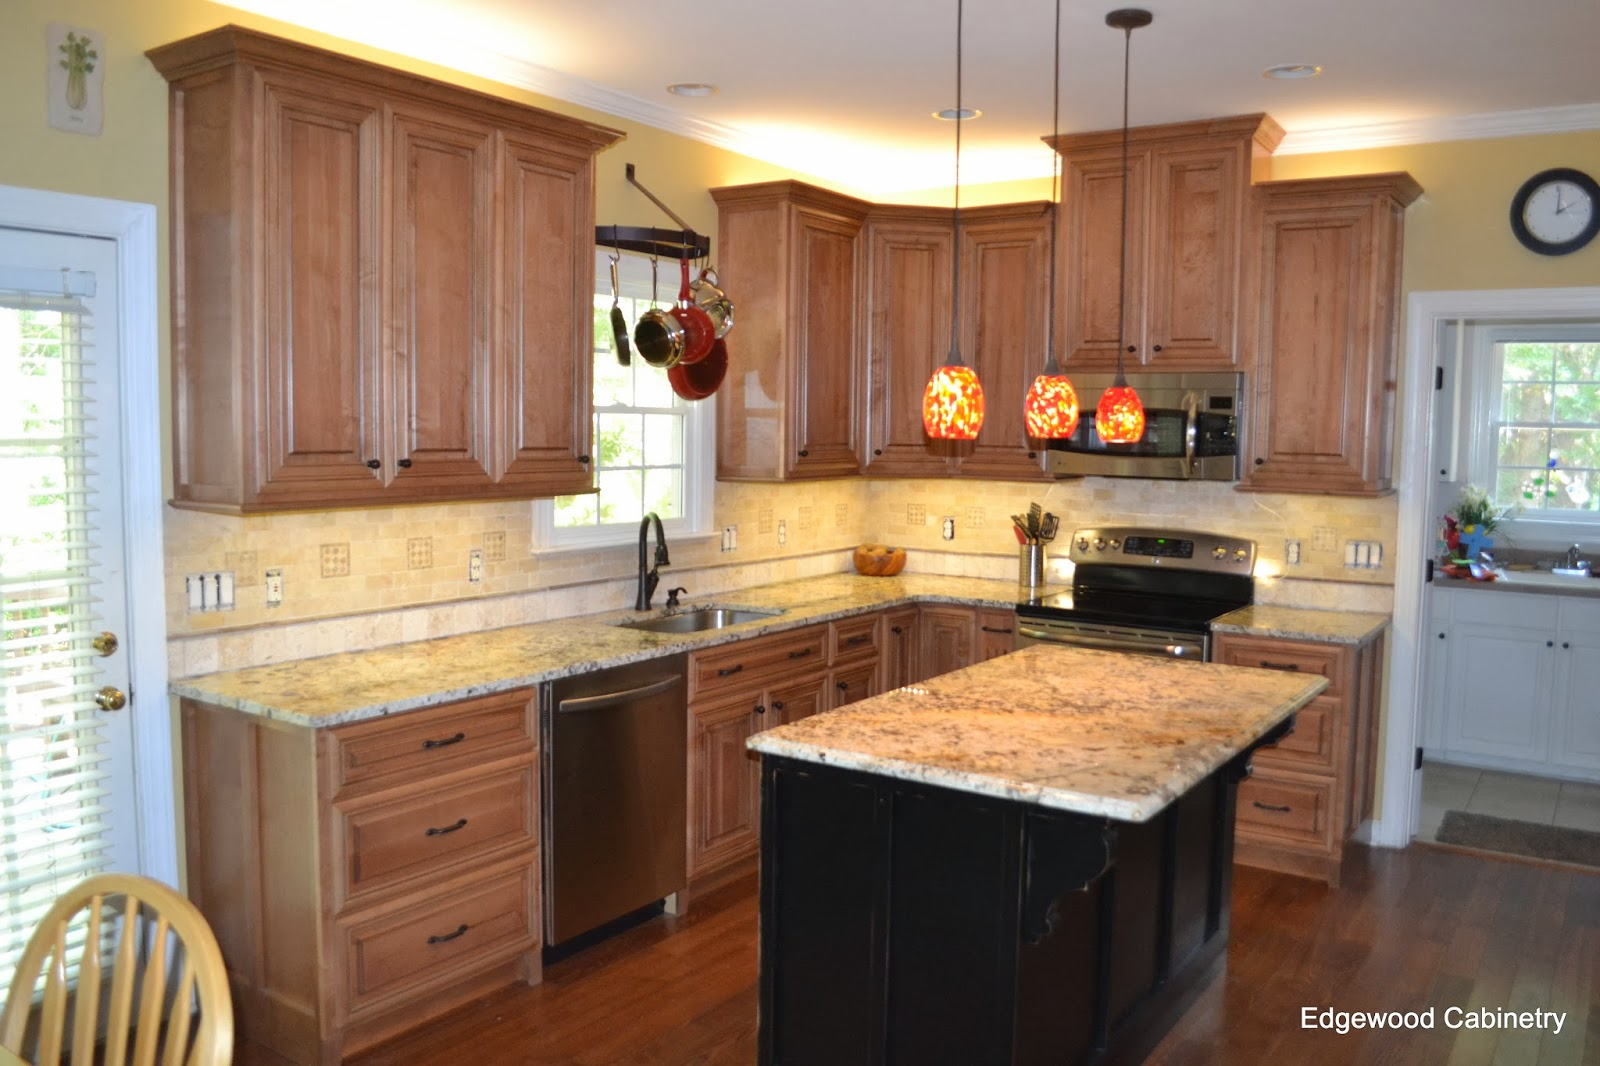 Kitchen Remodel Mistakes 5 major kitchen remodel mistakes to avoid | edgewood cabinetry